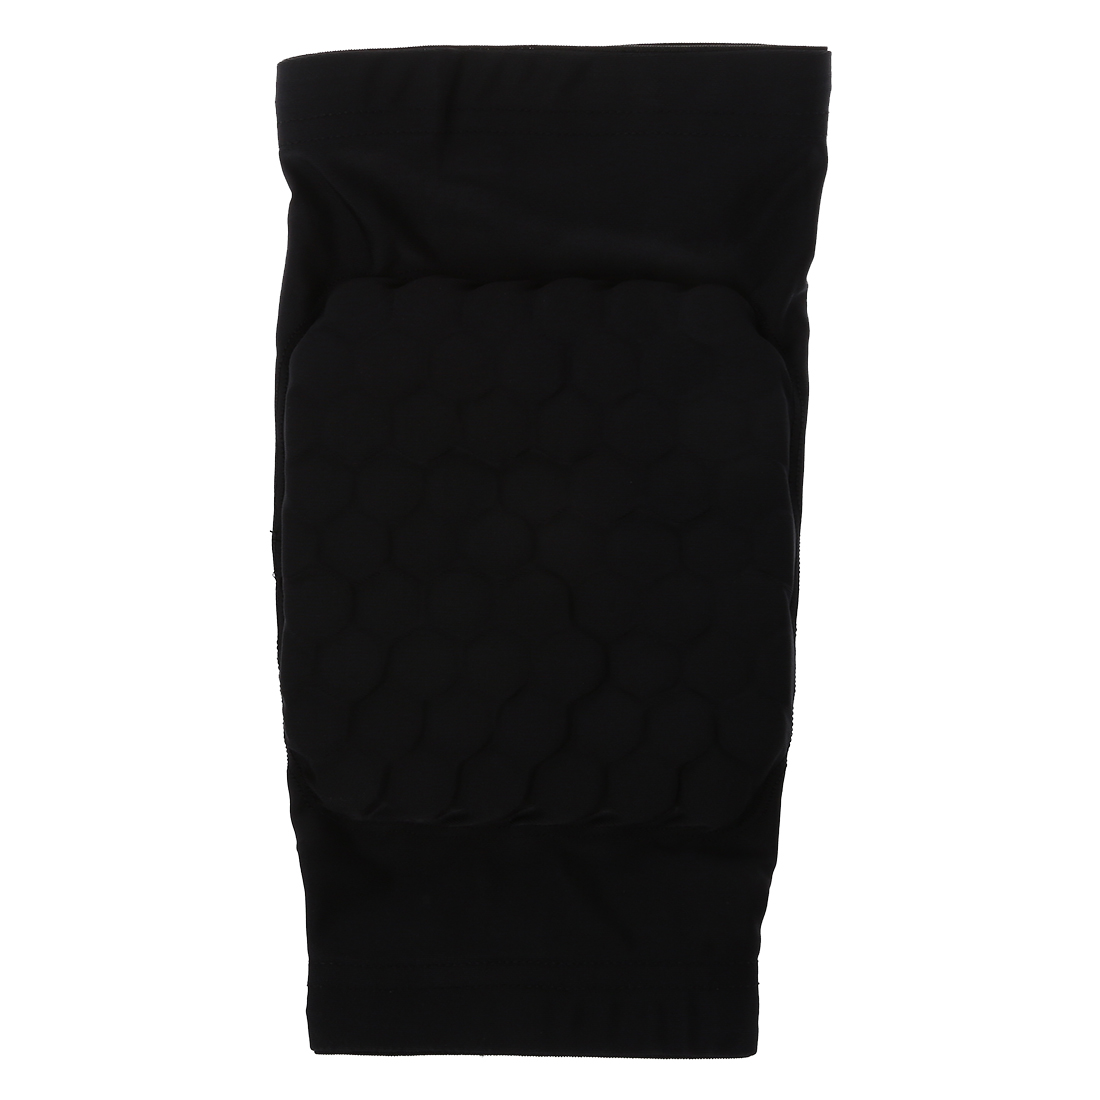 Genouillere Protection de Genou Antichoc Basketball Sport Volleyball Sport Basketball Taille L Y3 4bb3d3